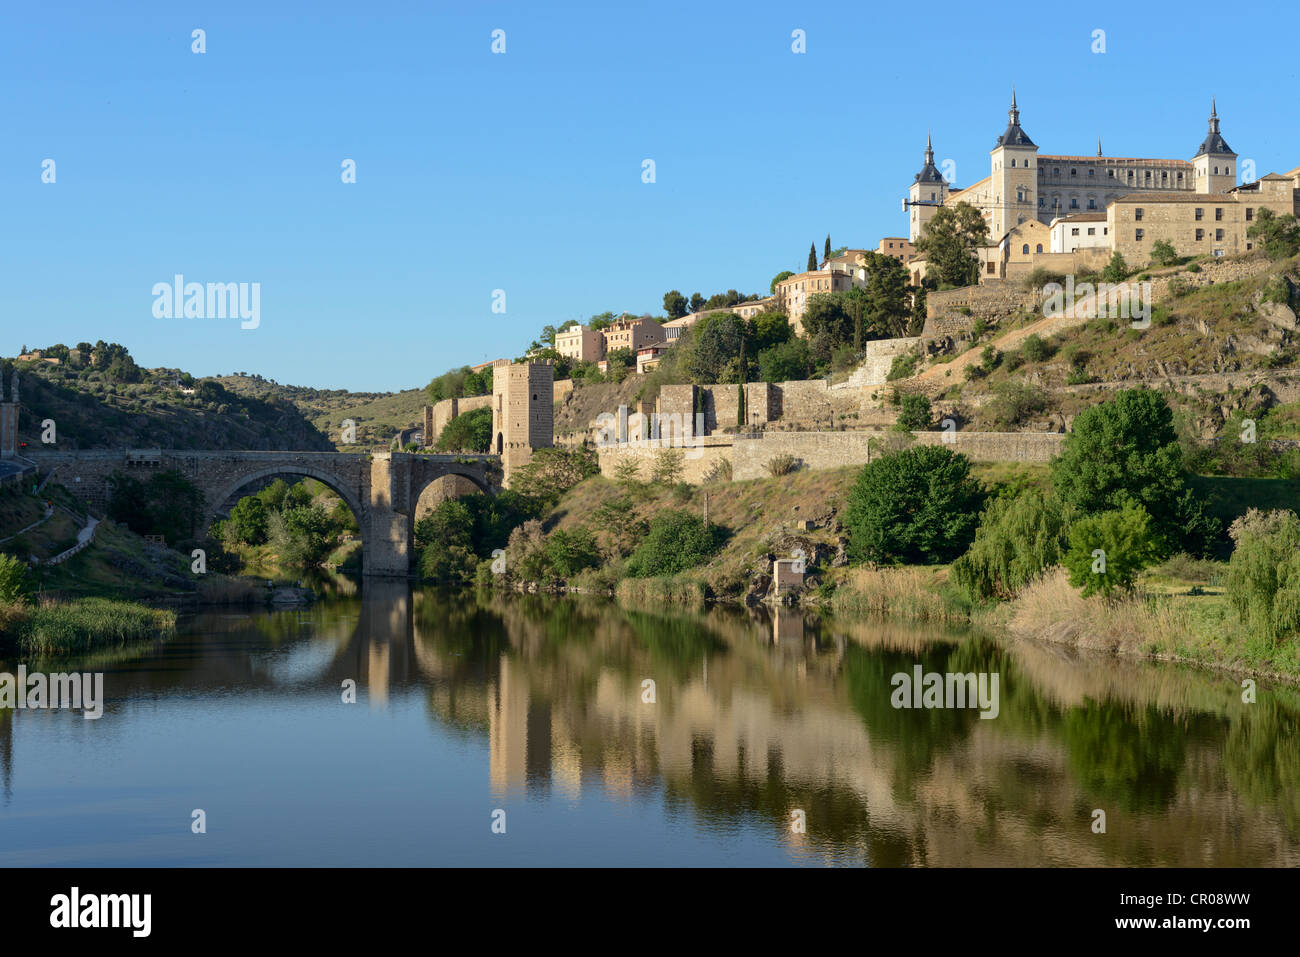 Tagus River with San Martin Bridge and the Alcazar, Toledo,Spain - Stock Image